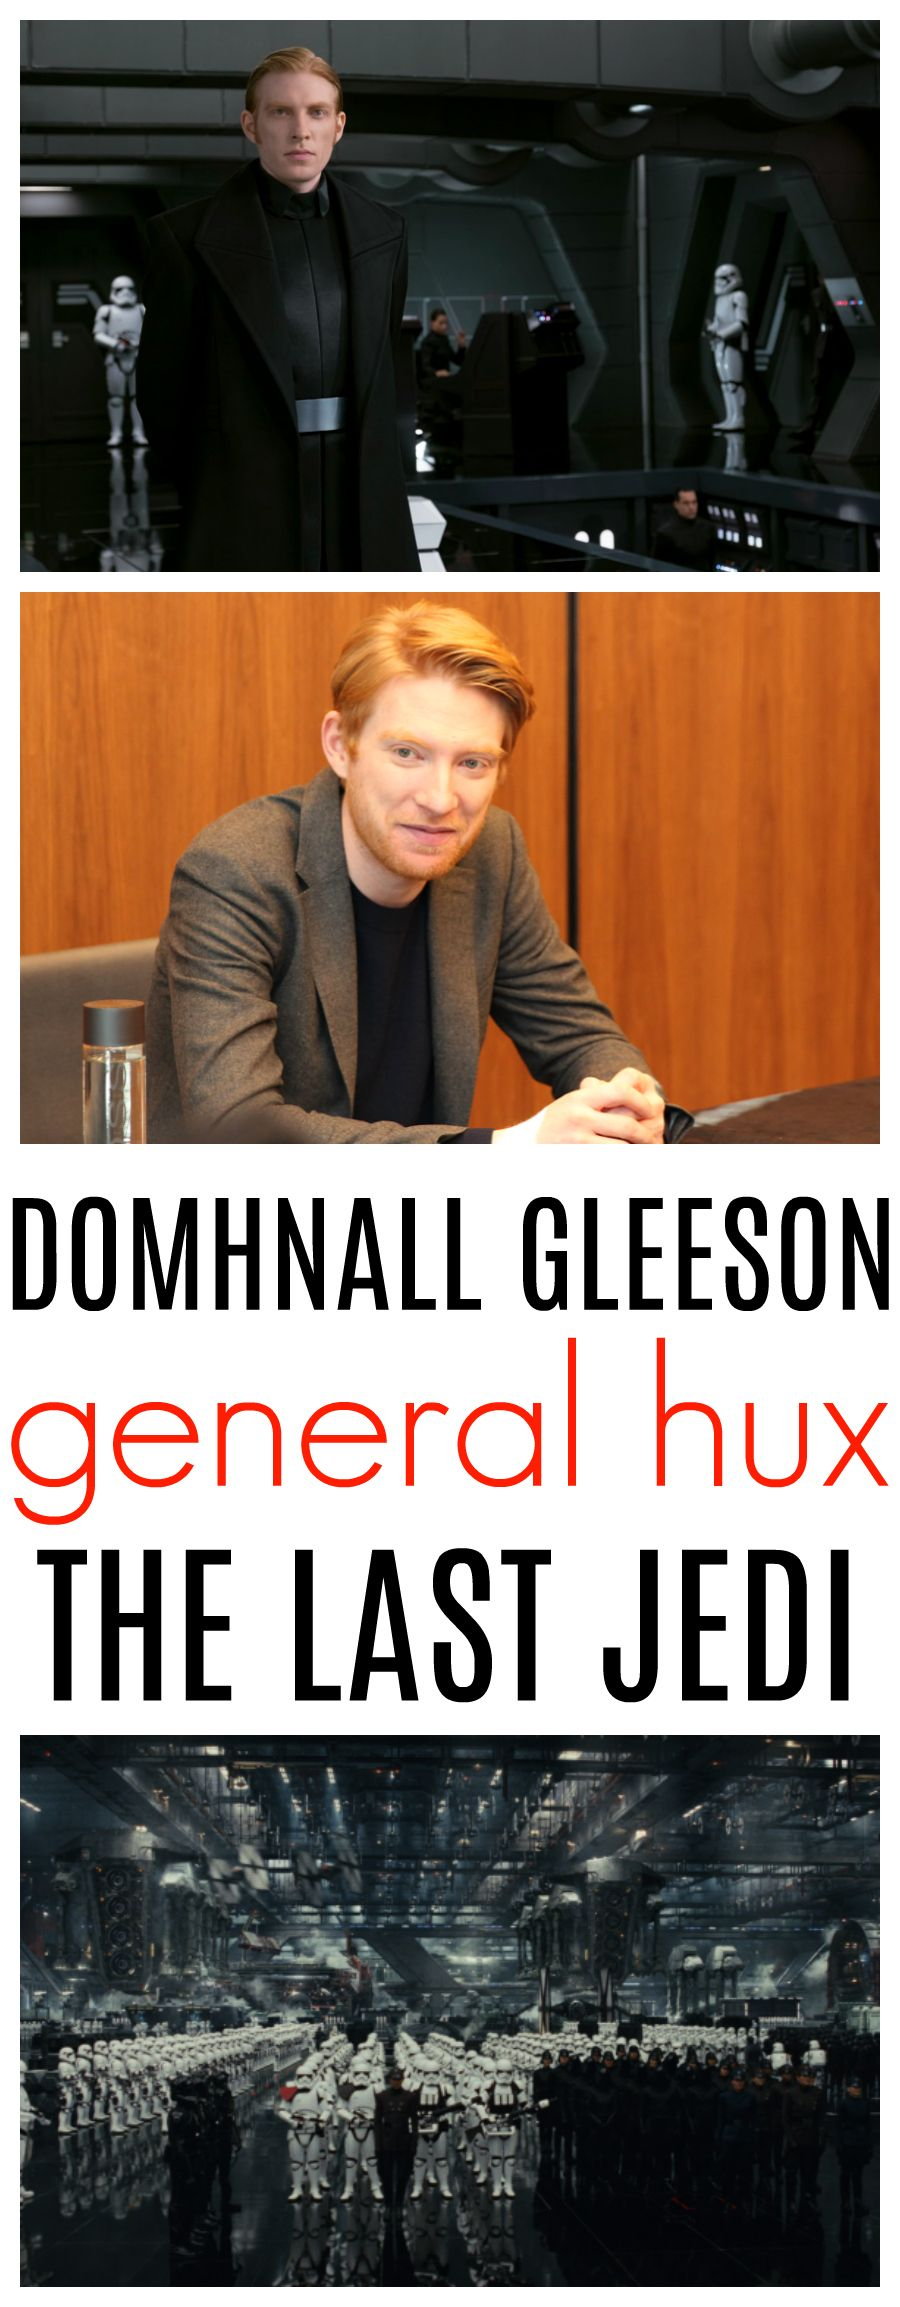 Domhnall Gleeson Interview Star Wars The Last Jedi General Hux On The Edge Raising Whasians General Hux Last Jedi Jedi General